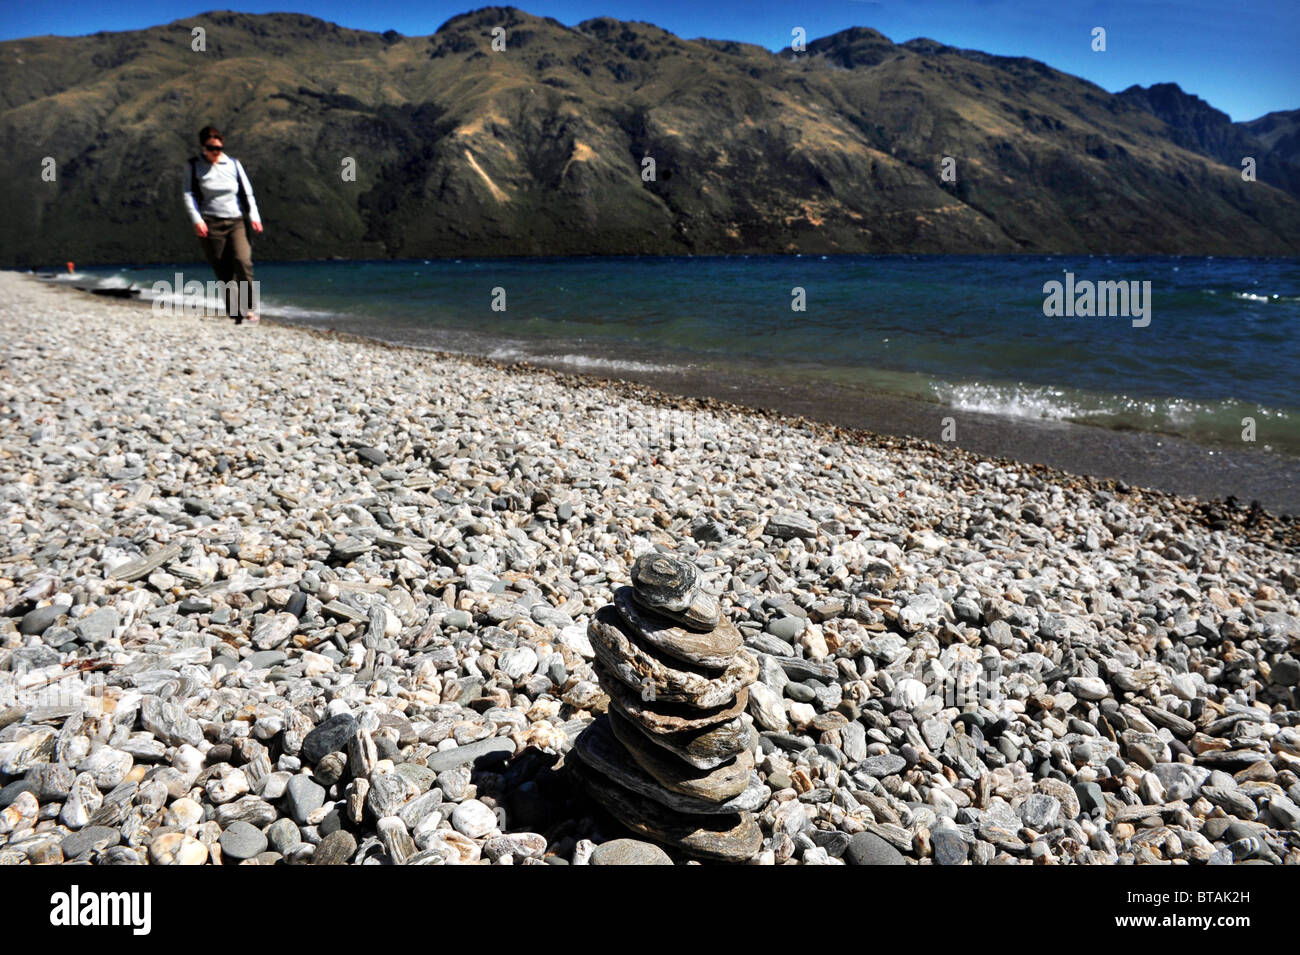 Woman walks on the stony beach of Lake Wakatipu, near Queenstown, New Zealand. The lake has views of nearby mountains. Stock Photo